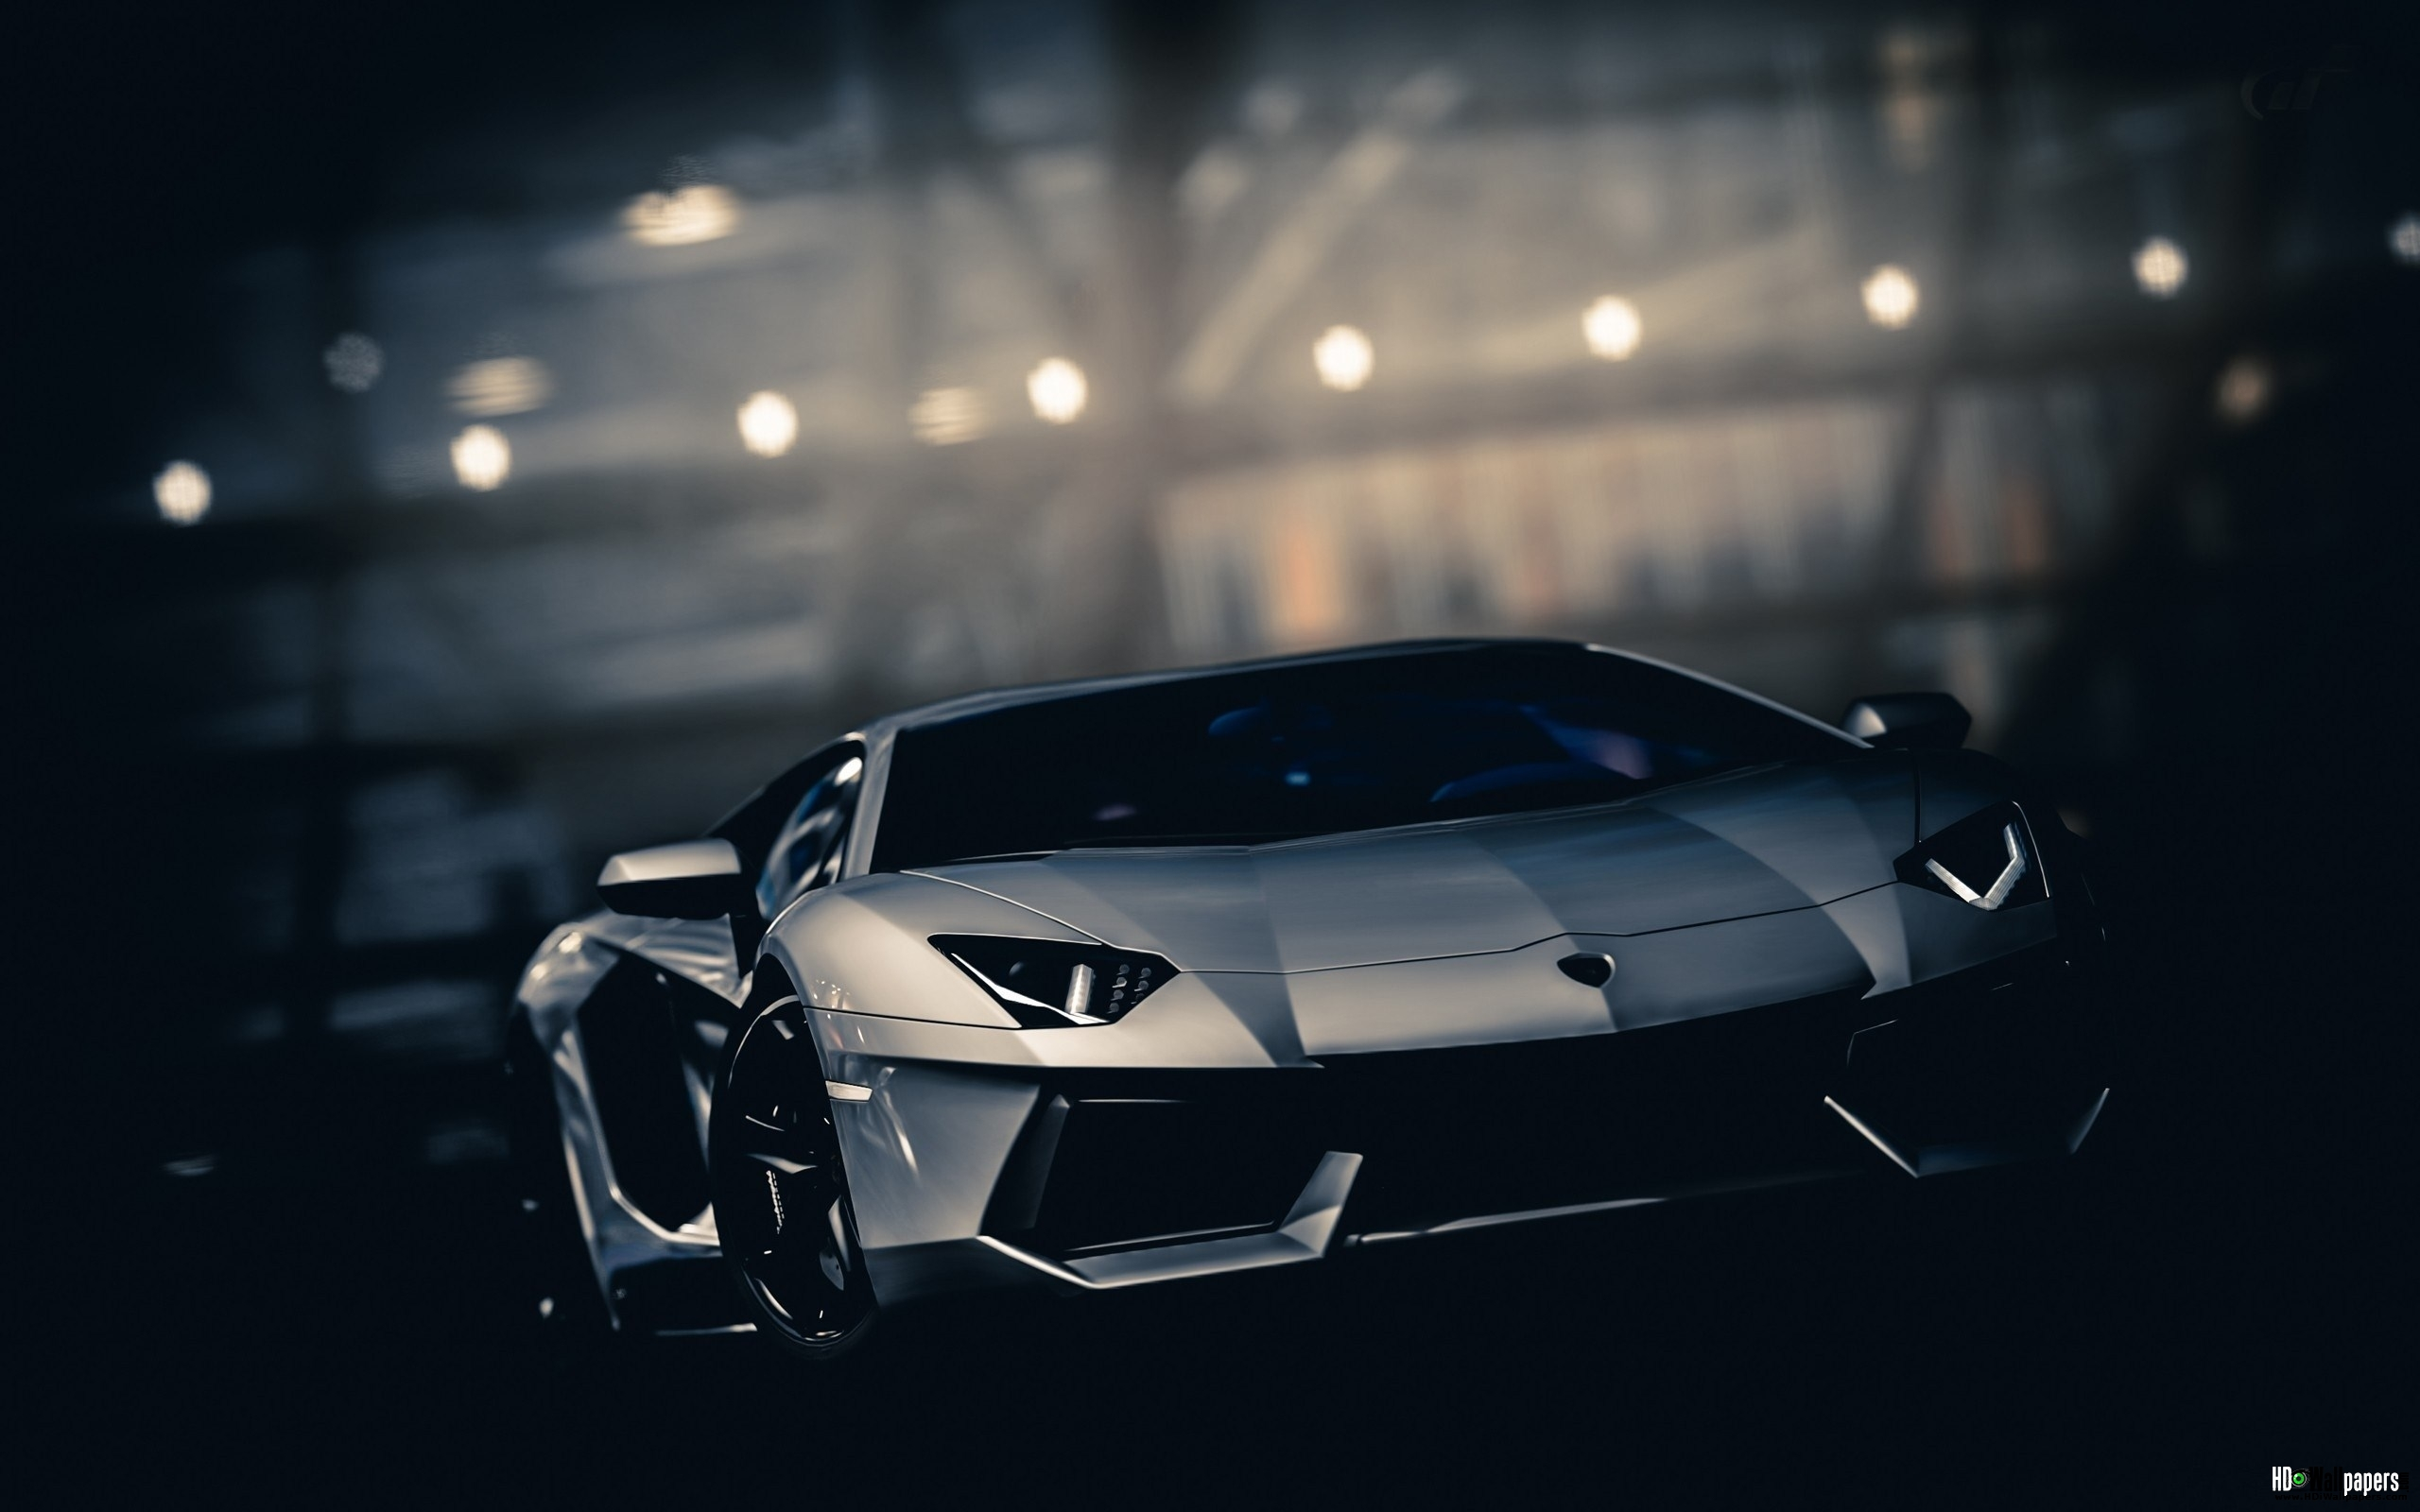 Car Wallpaper Wallpaper 1920x1080 Wallpaper Lamborghini Hd 2560x1600